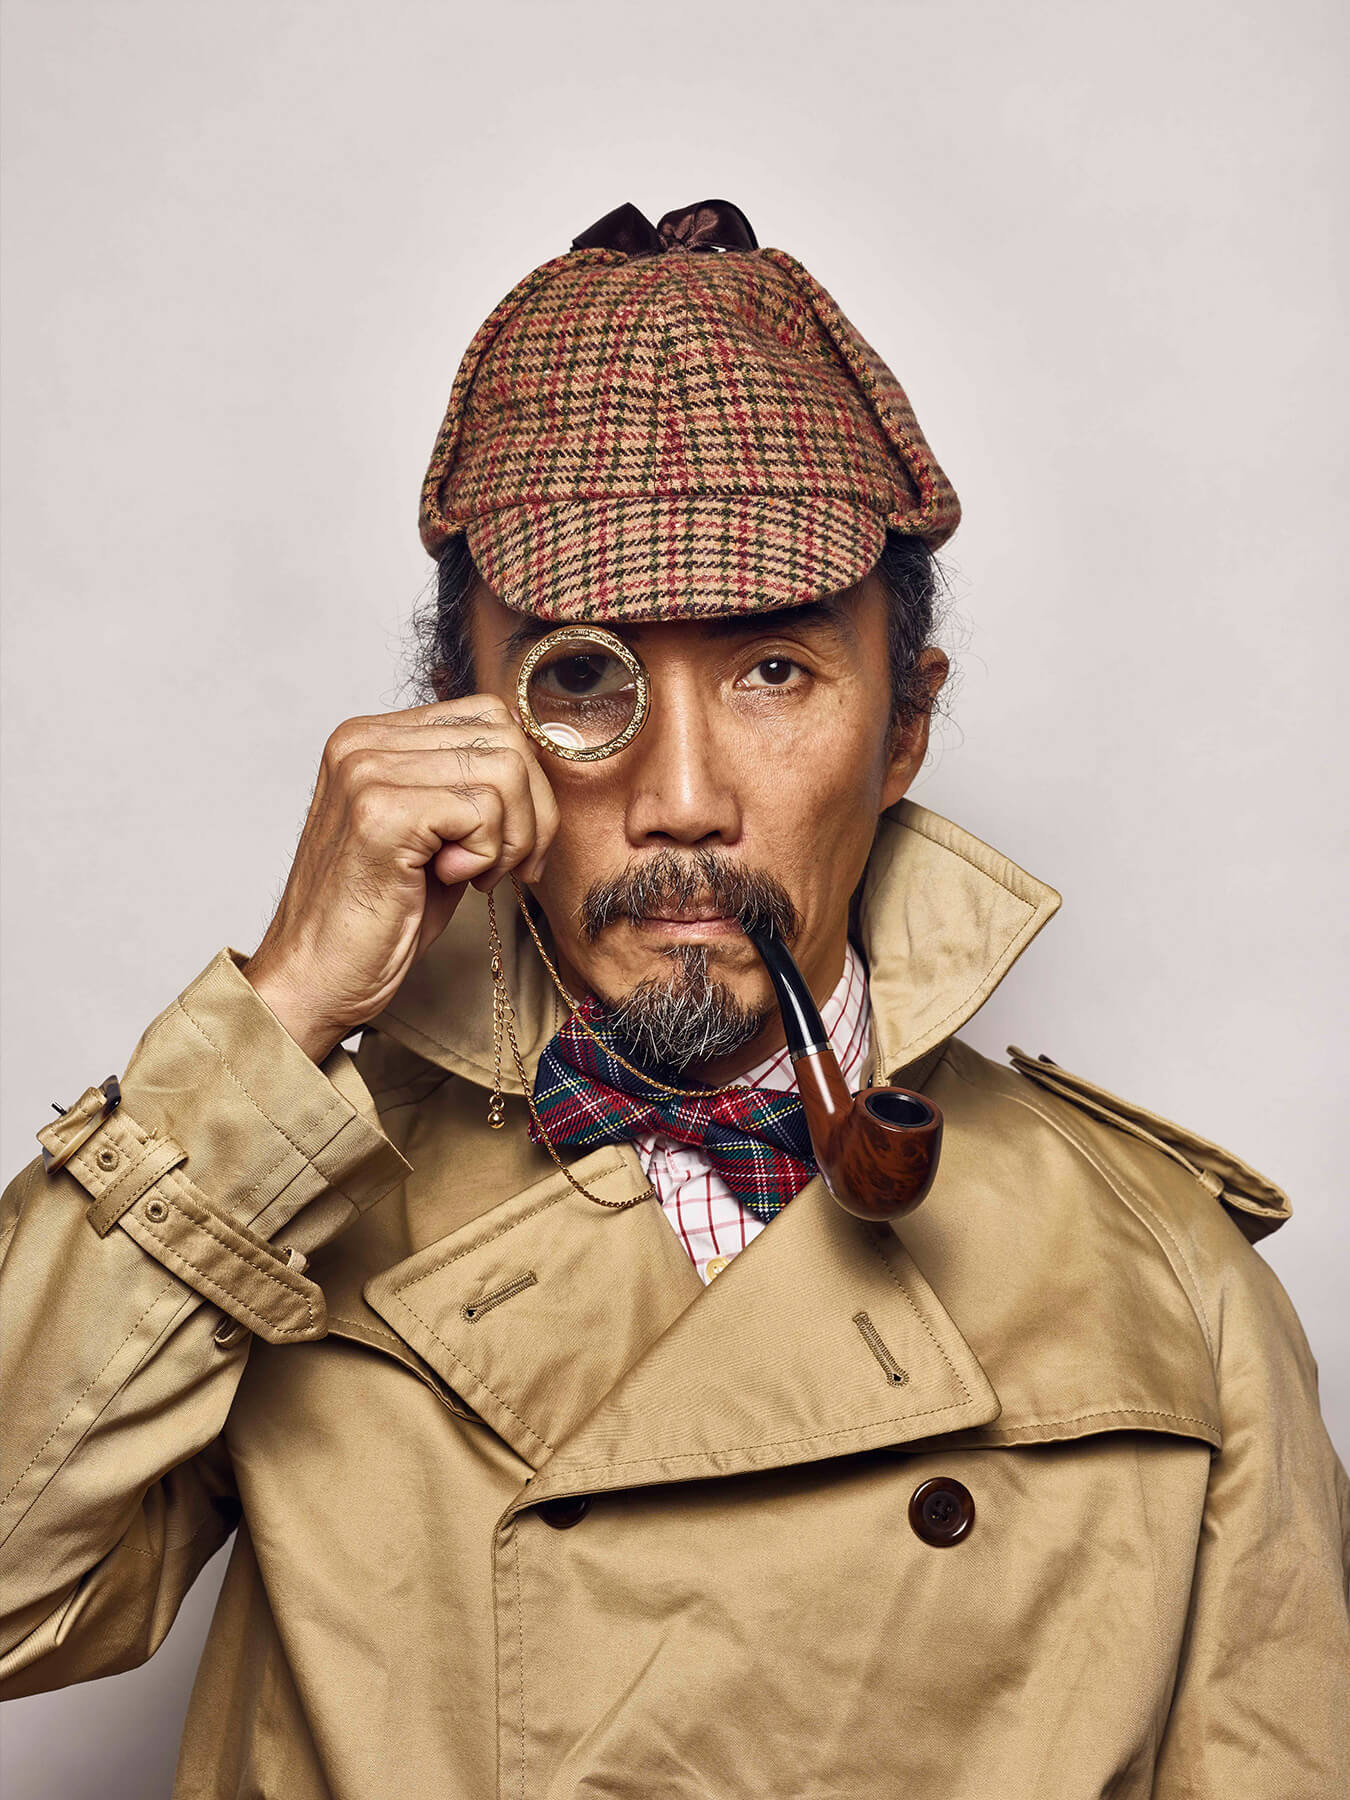 18 Aug 2017 Derong is decked out in a complete Sherlock Holmes get-up